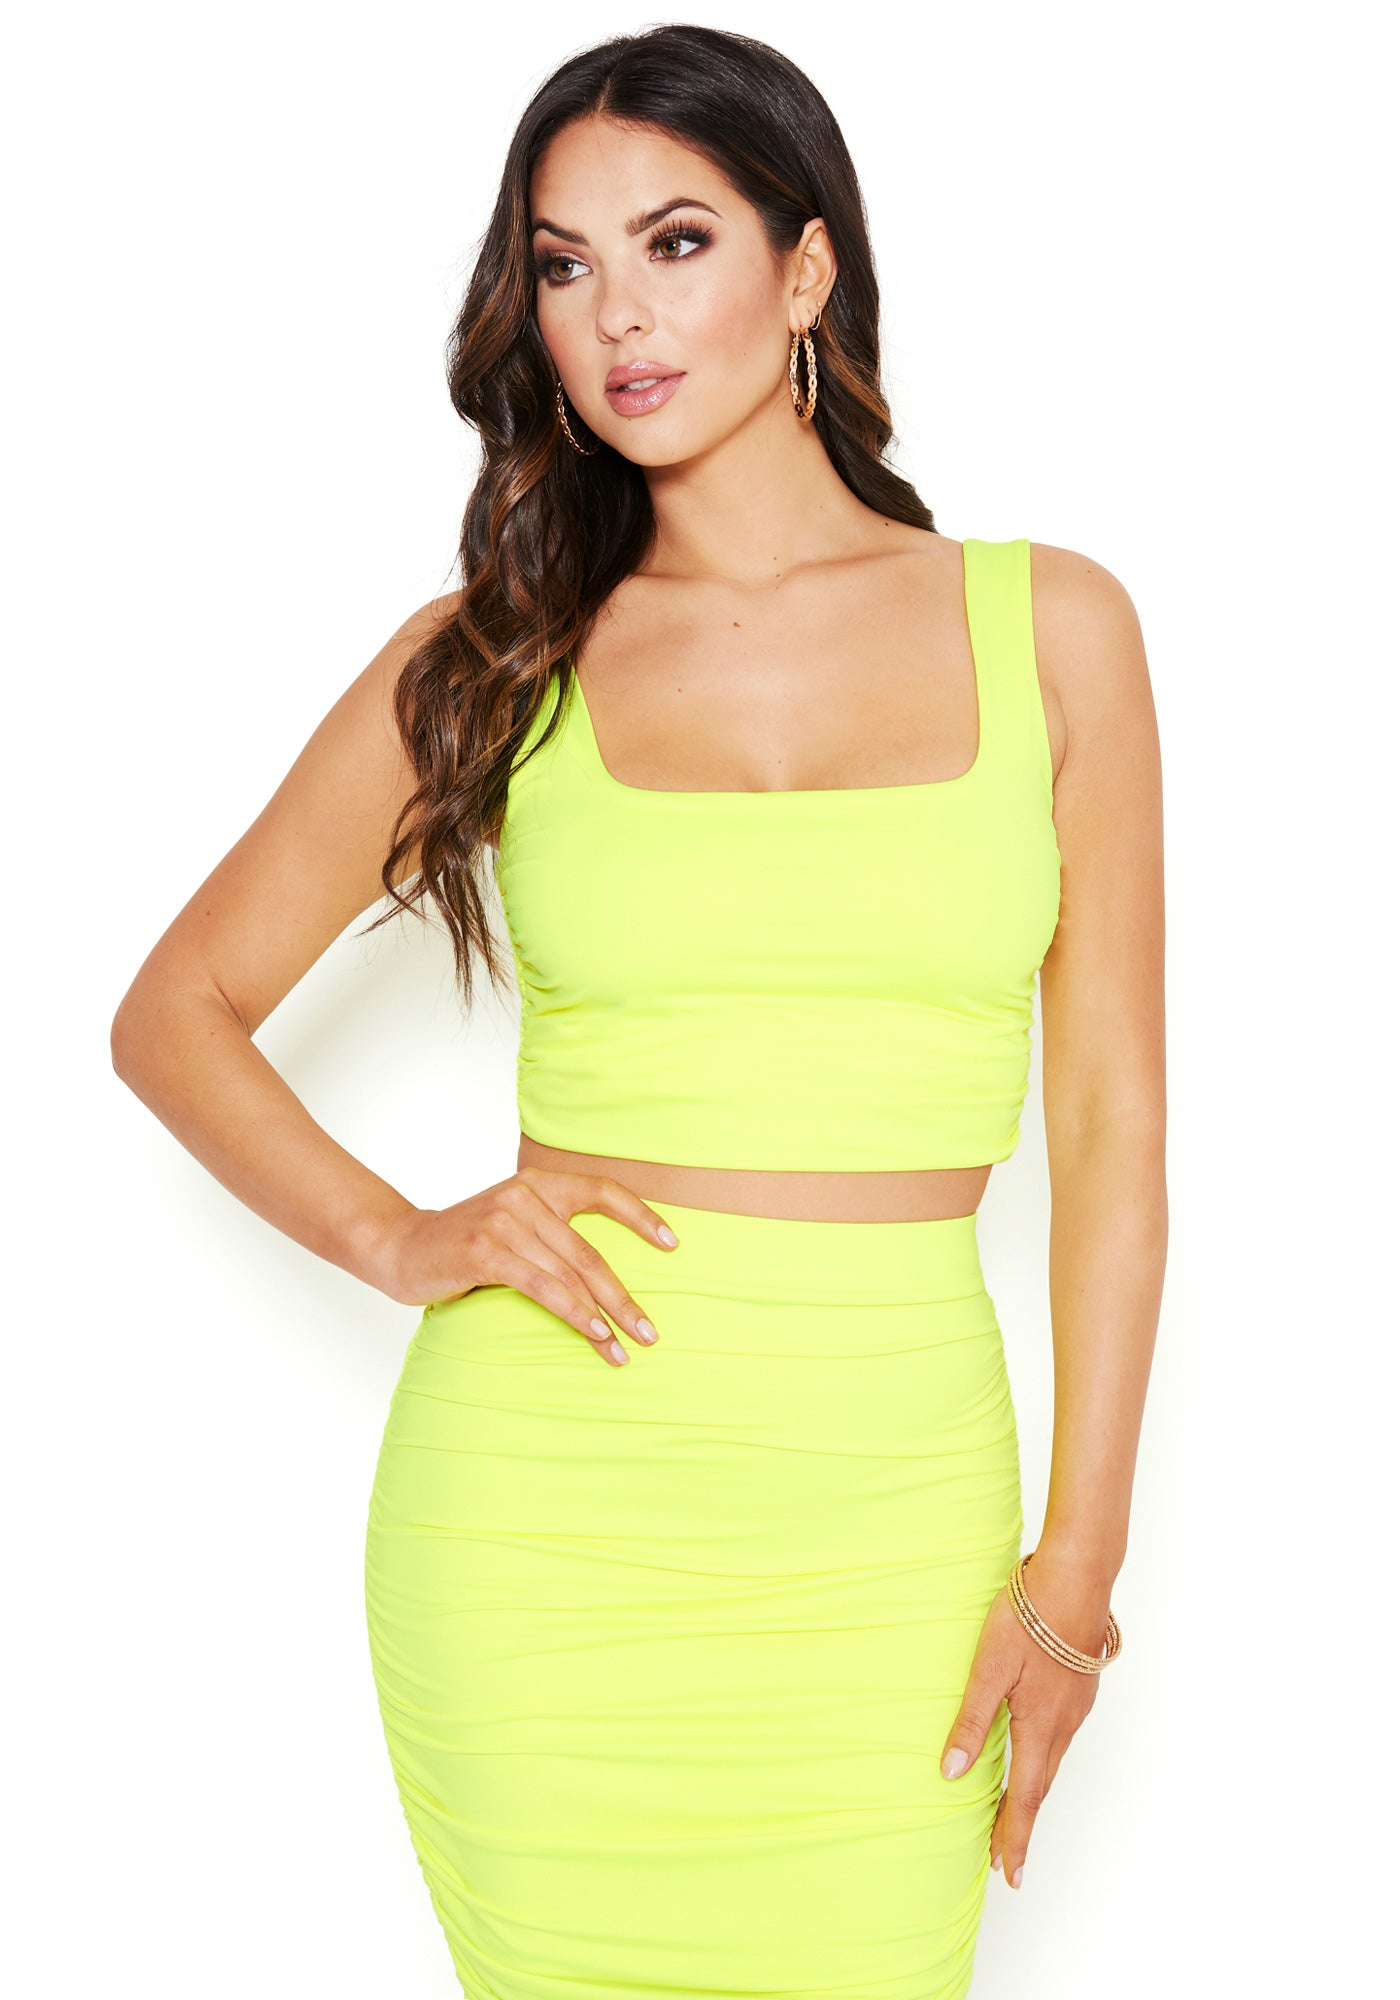 Image of Bebe Women's Disco Knit Crop Tops, Size XS in YELLOW NEON Spandex